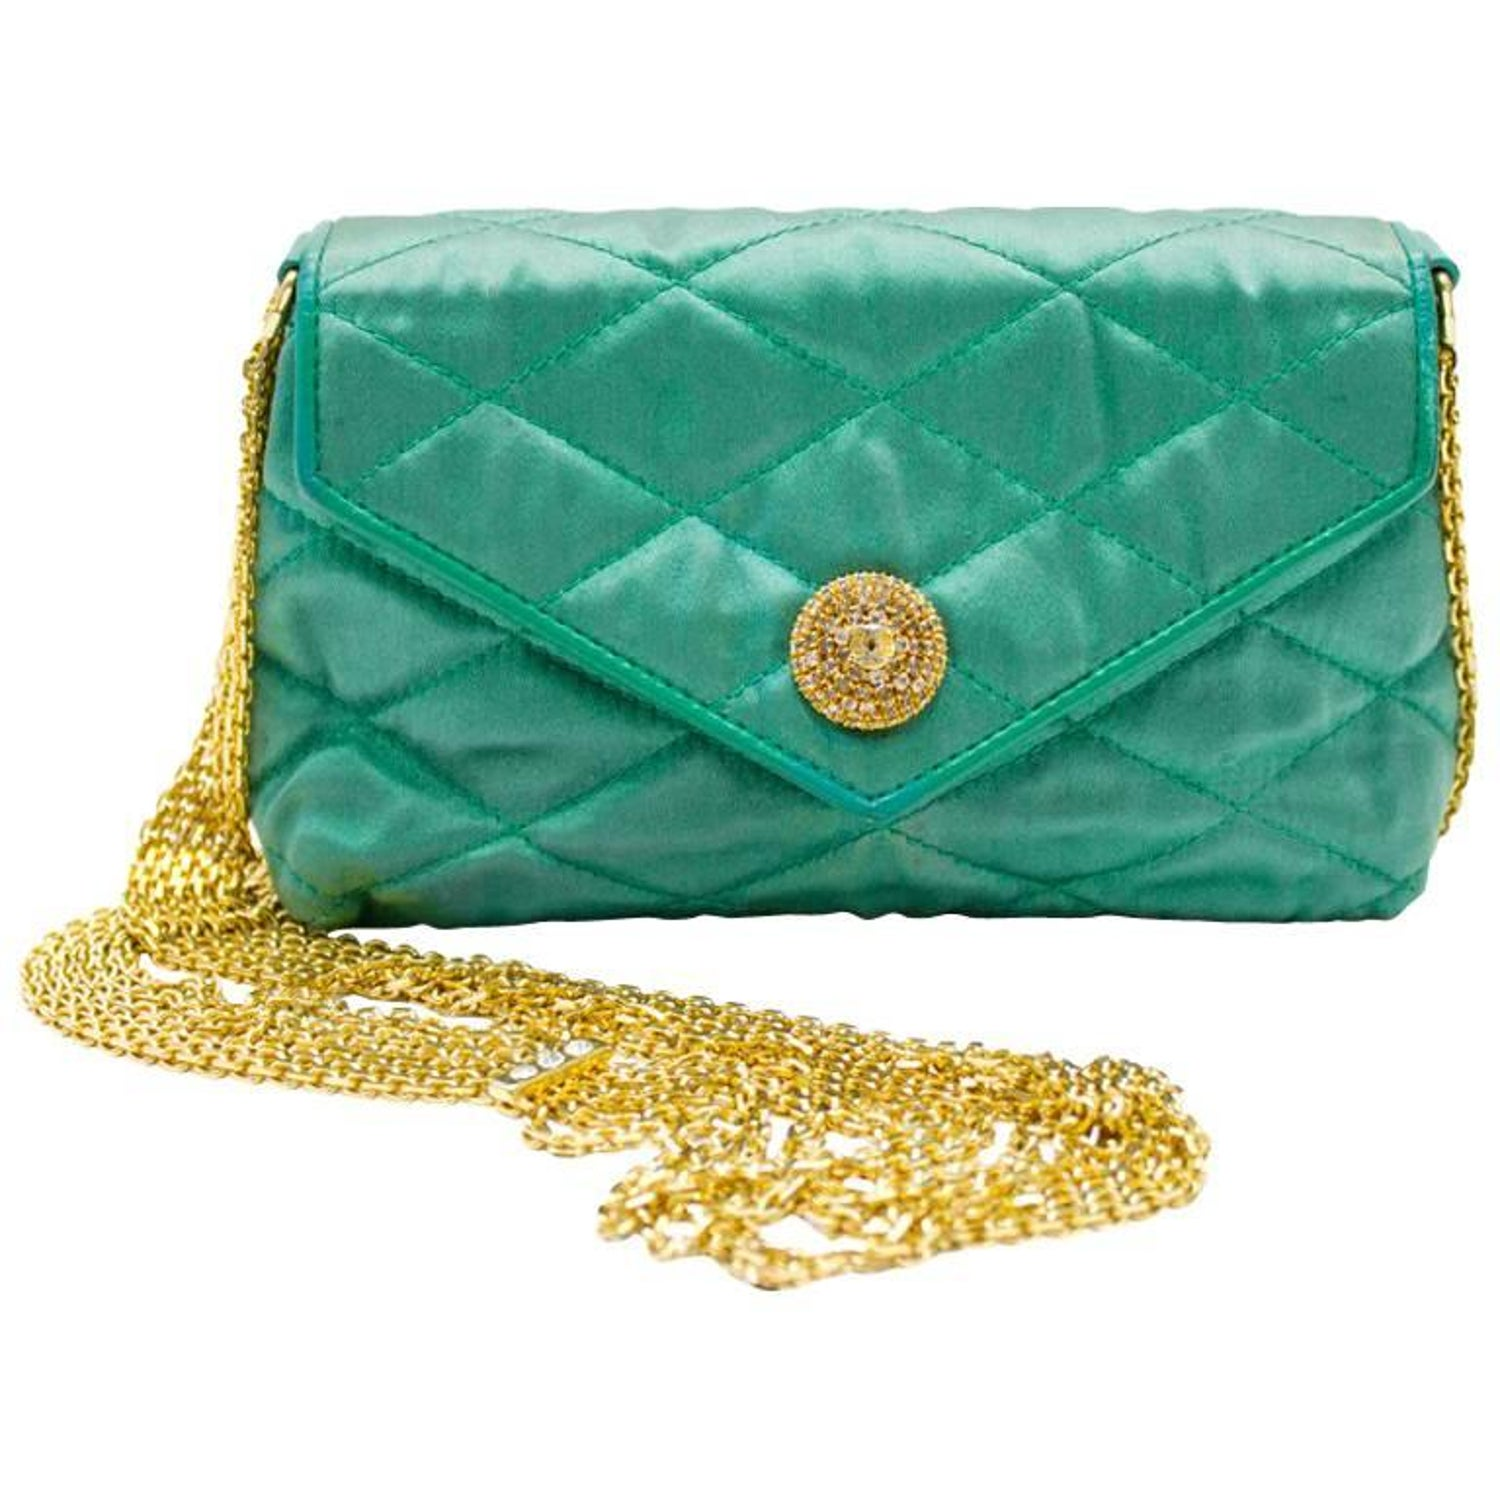 01f29445d8e5 1980s Chanel Emerald Green Silk Bag with Gold Chain at 1stdibs